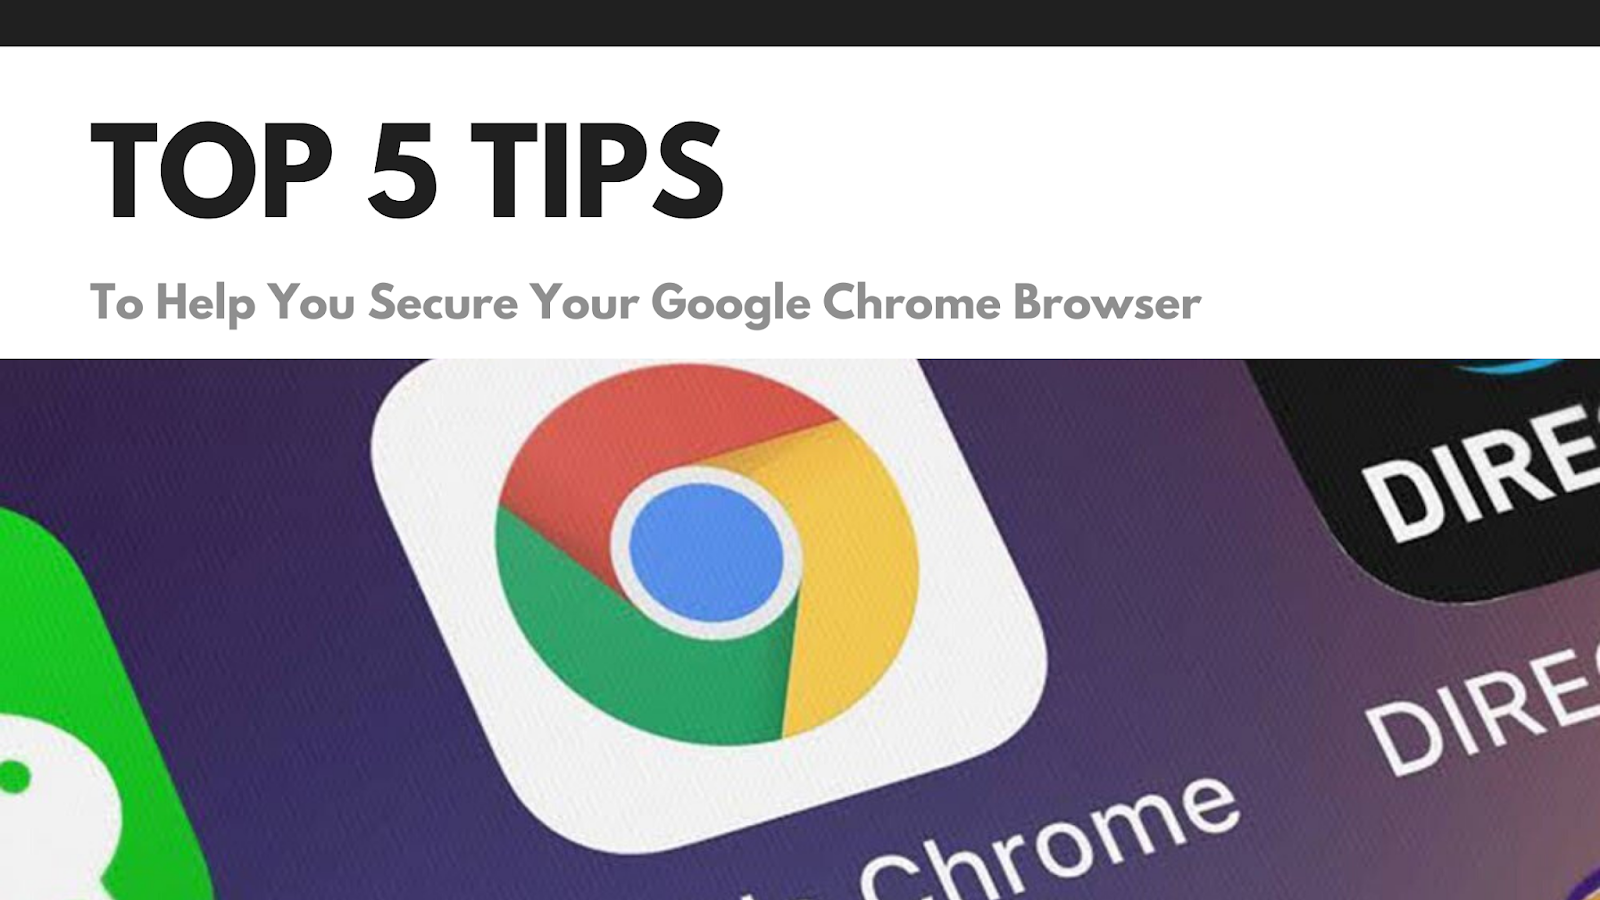 top-5-tips-to-secure-chrome